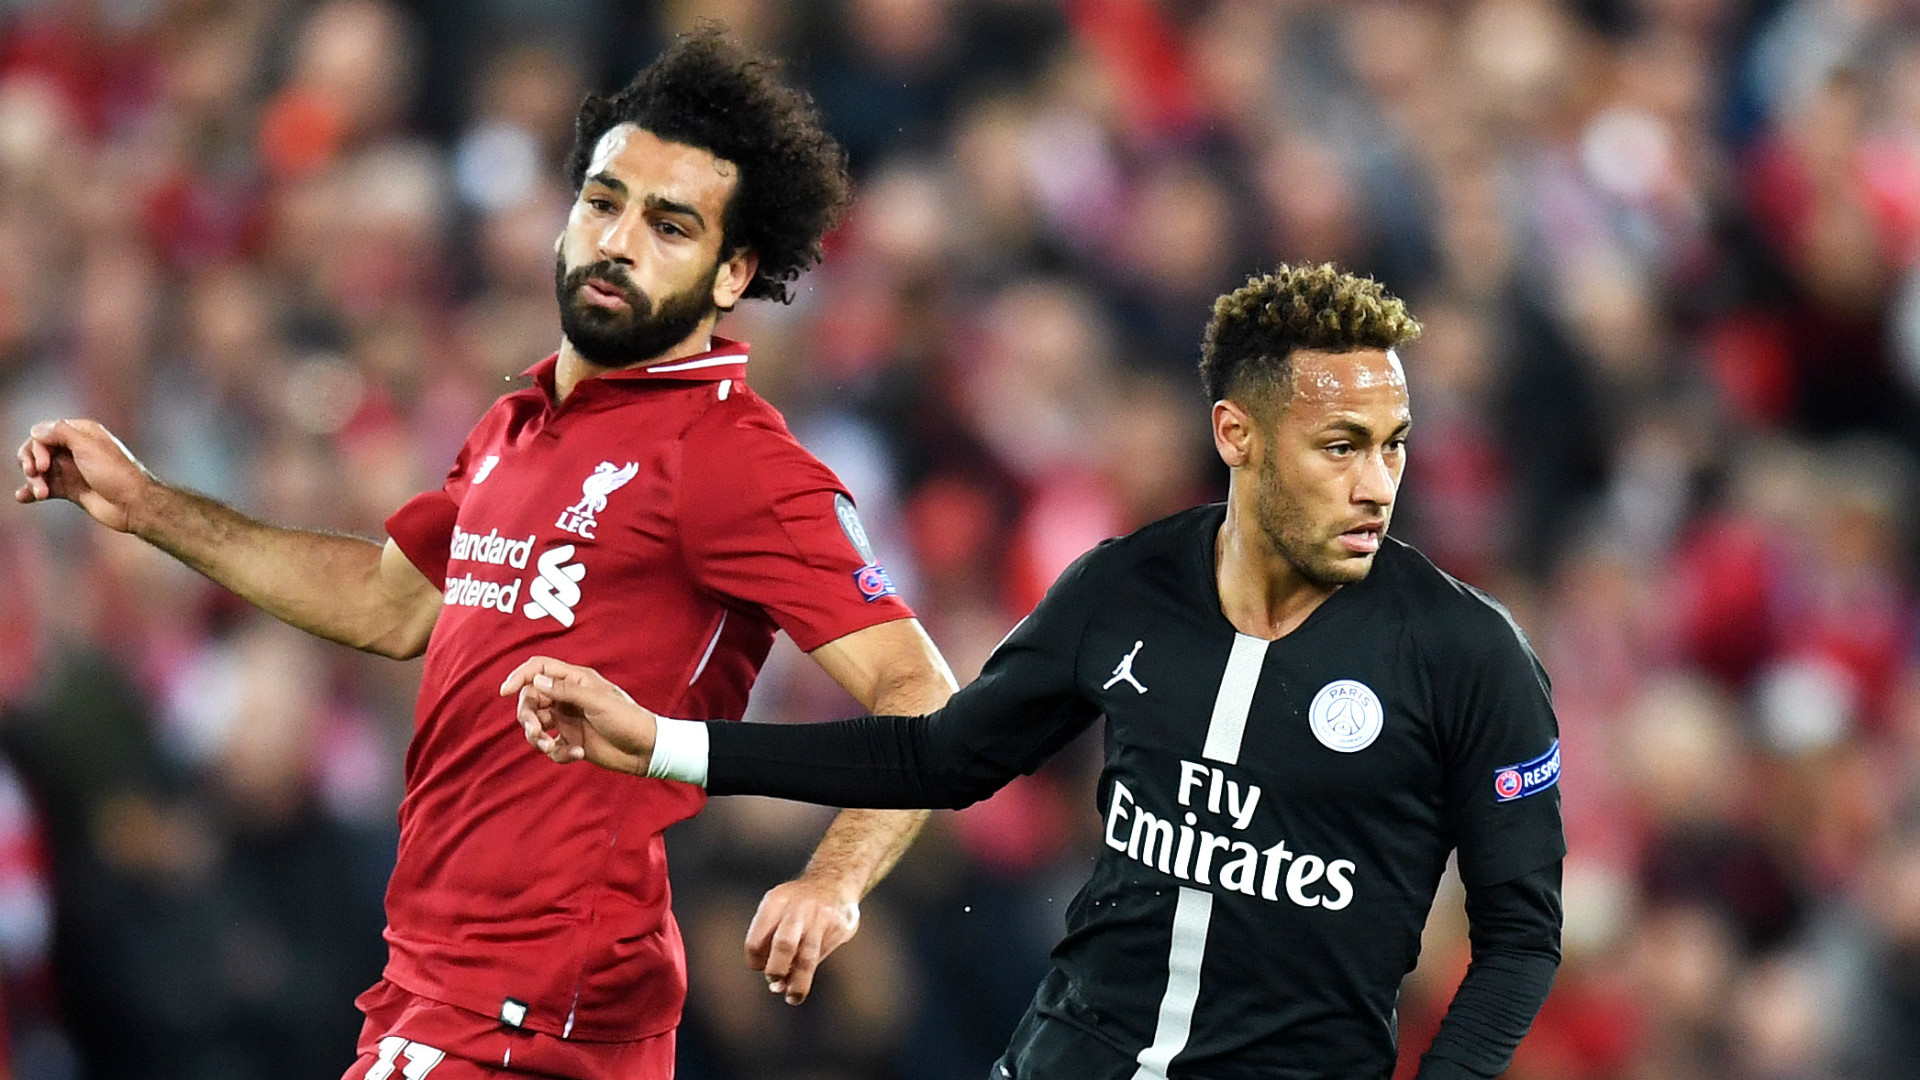 Mohamed Salah Neymar Liverpool PSG Paris Saint-Germain 2018-19